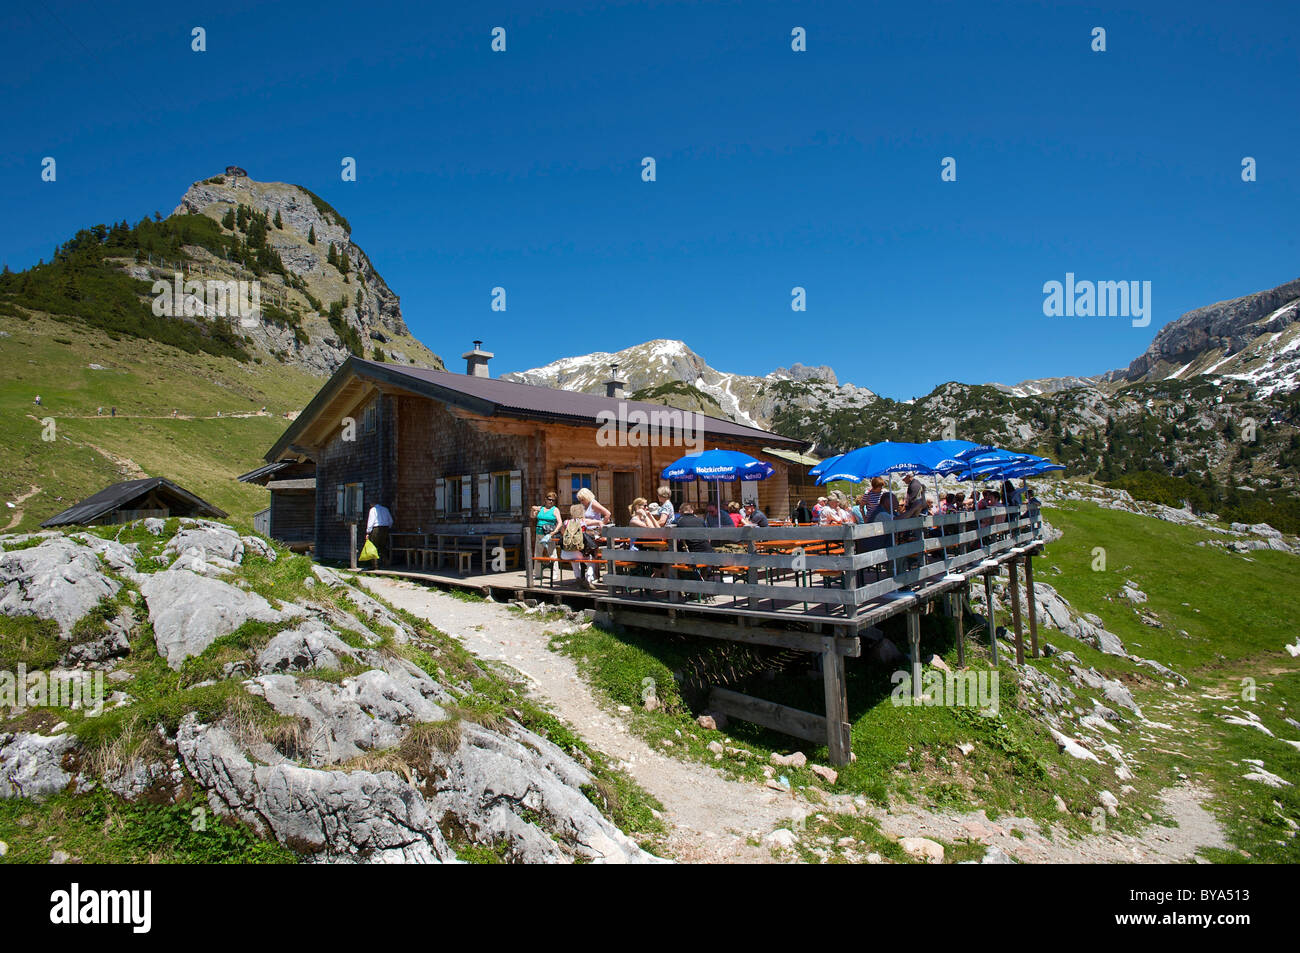 Alpine Hut Below Mt Gschoellkopf In The Rofangebirge Mountains Near Achensee Tyrol Austria Europe